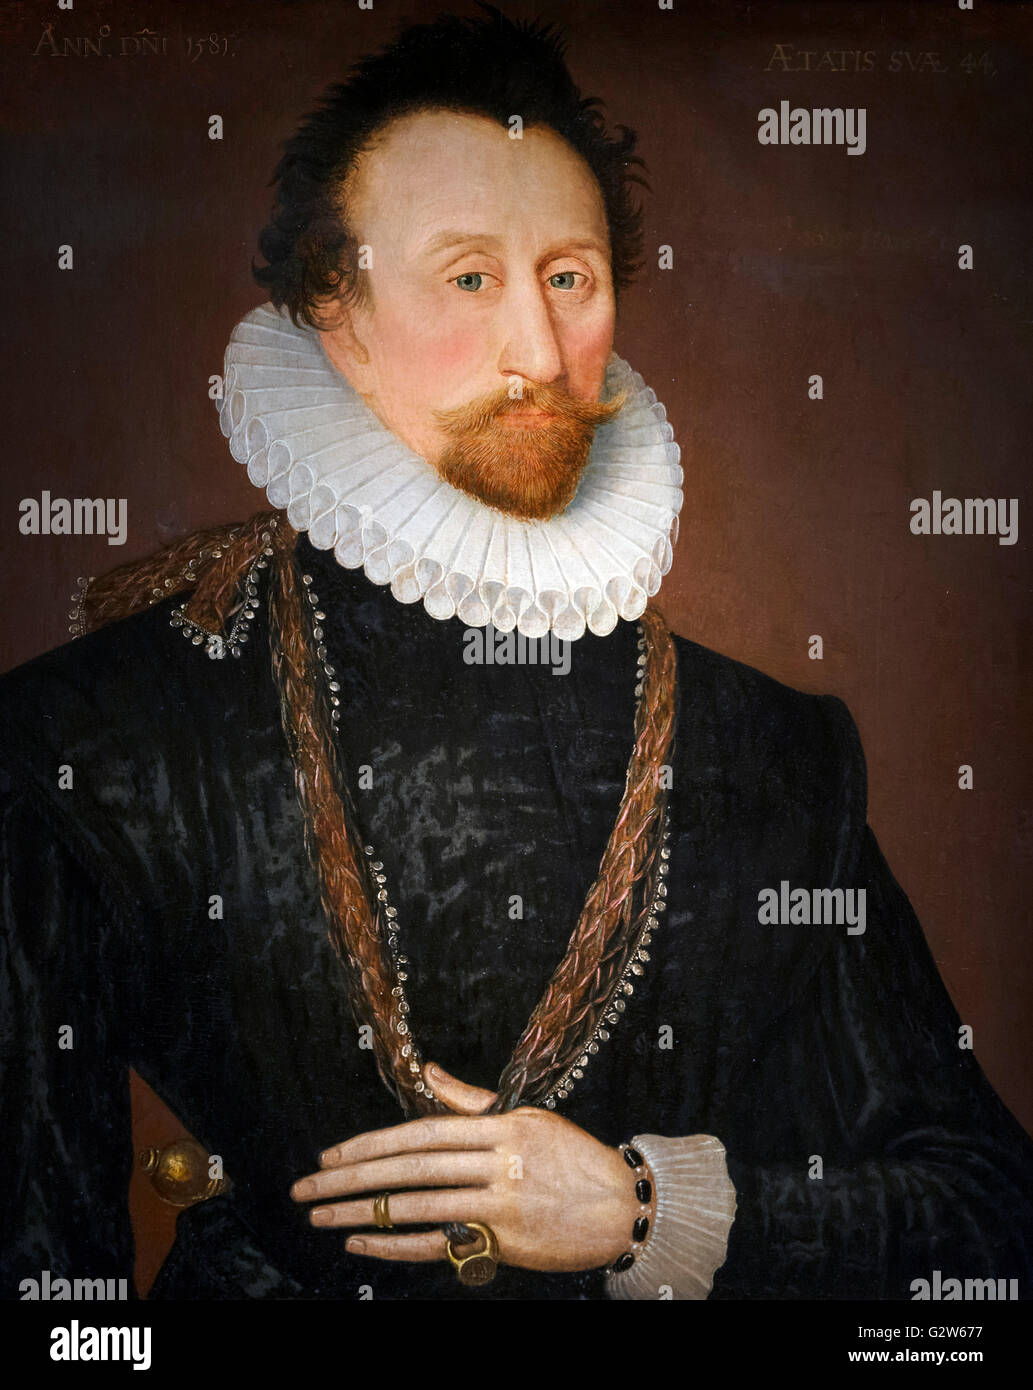 Admiral Sir John Hawkins (1532-1595), an English naval commander, the first English slave trader and a highly successful - Stock Image